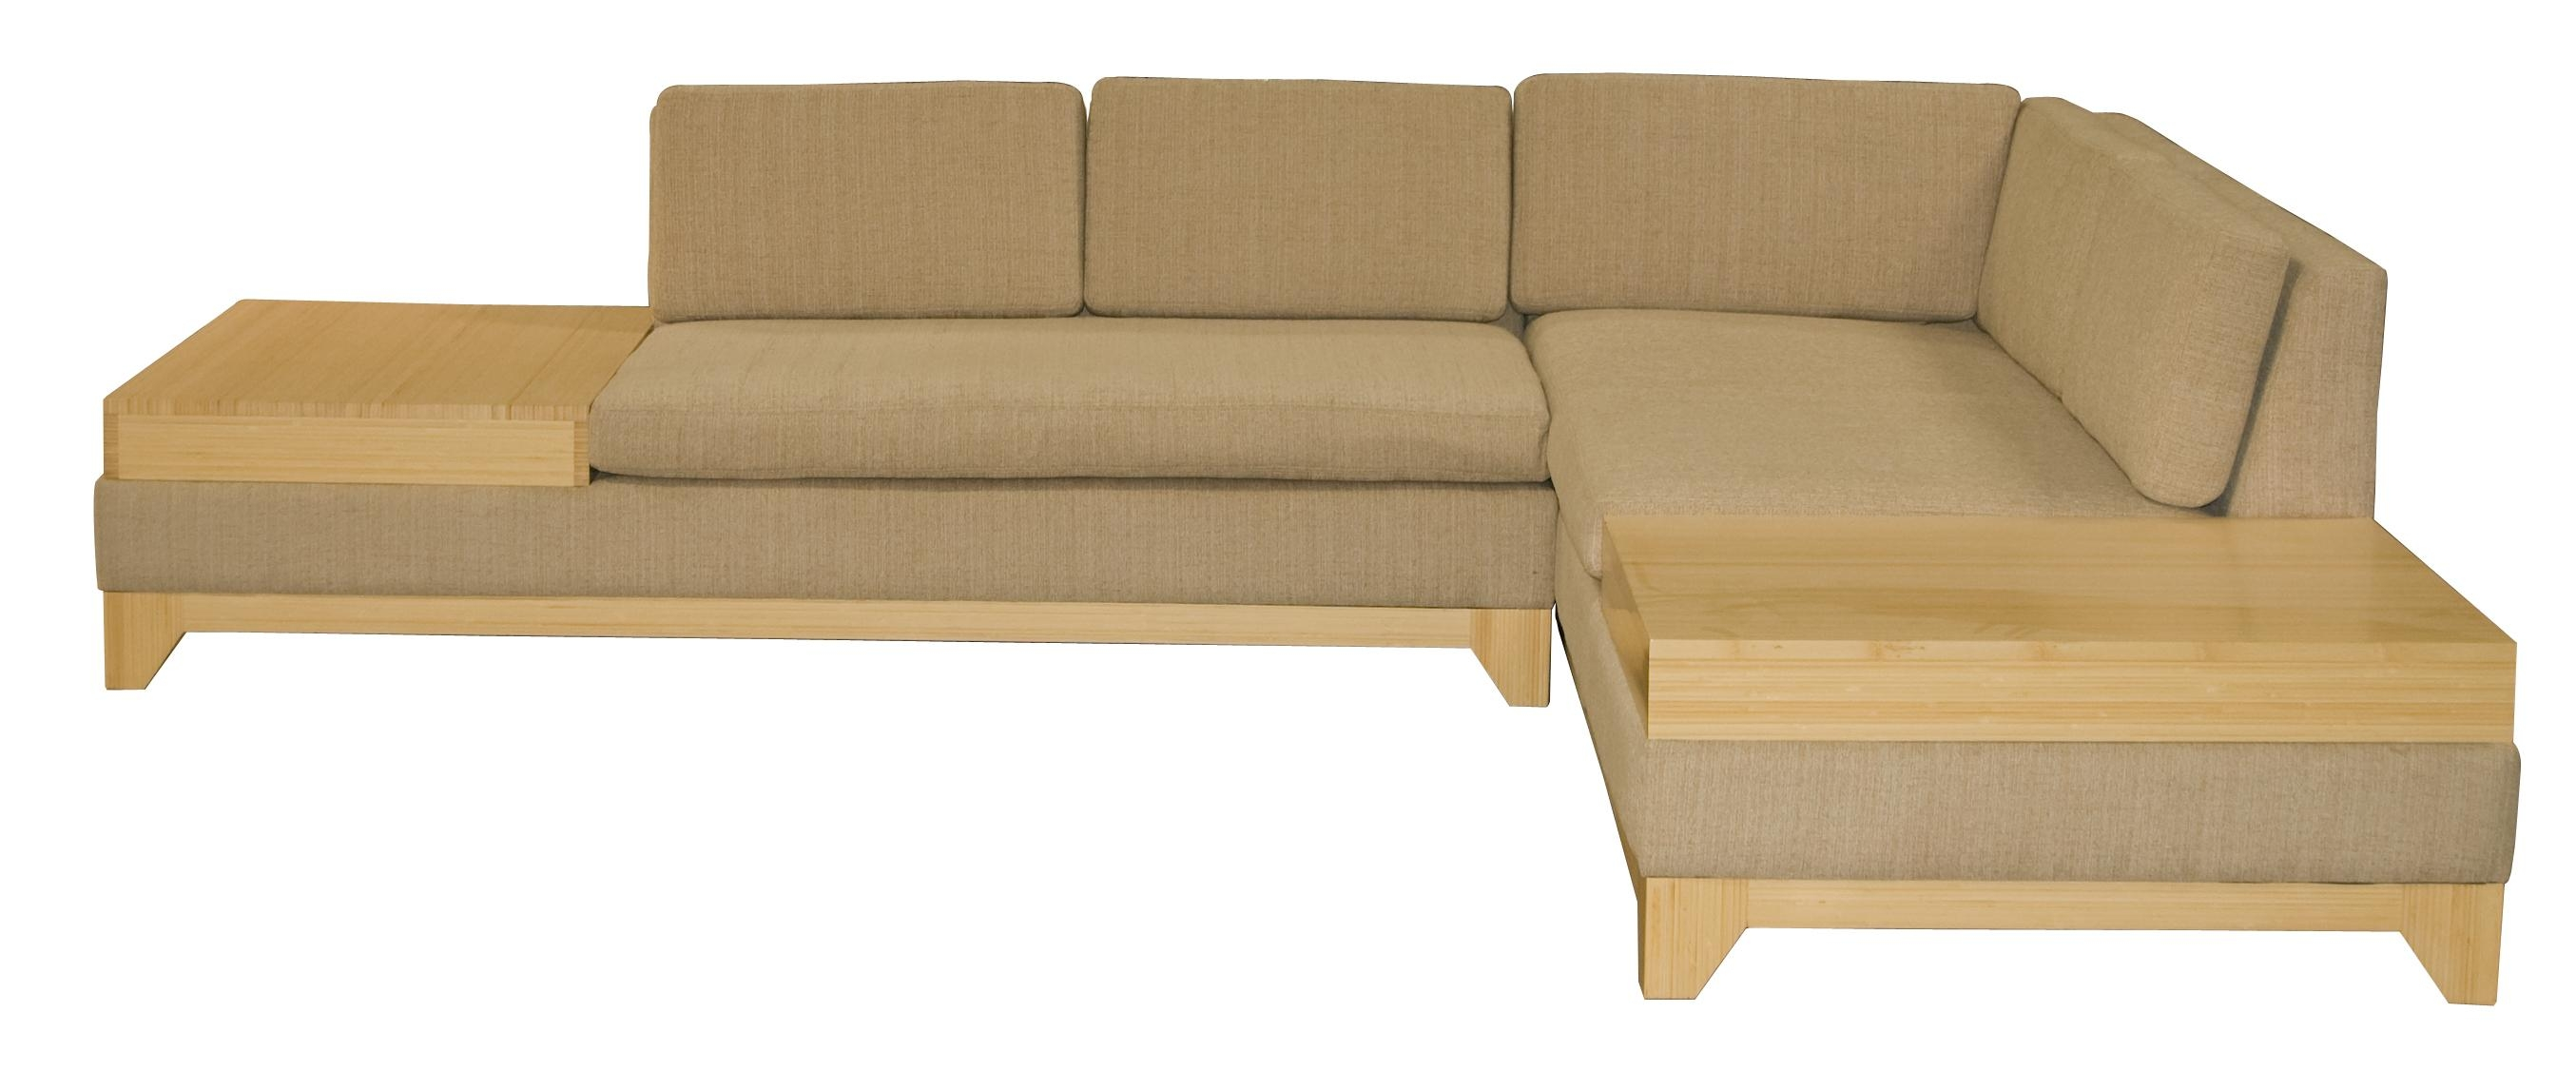 The Sofa Company Offers Customers Green Furnishings For The Home Regarding Bambo Sofas (Image 17 of 22)